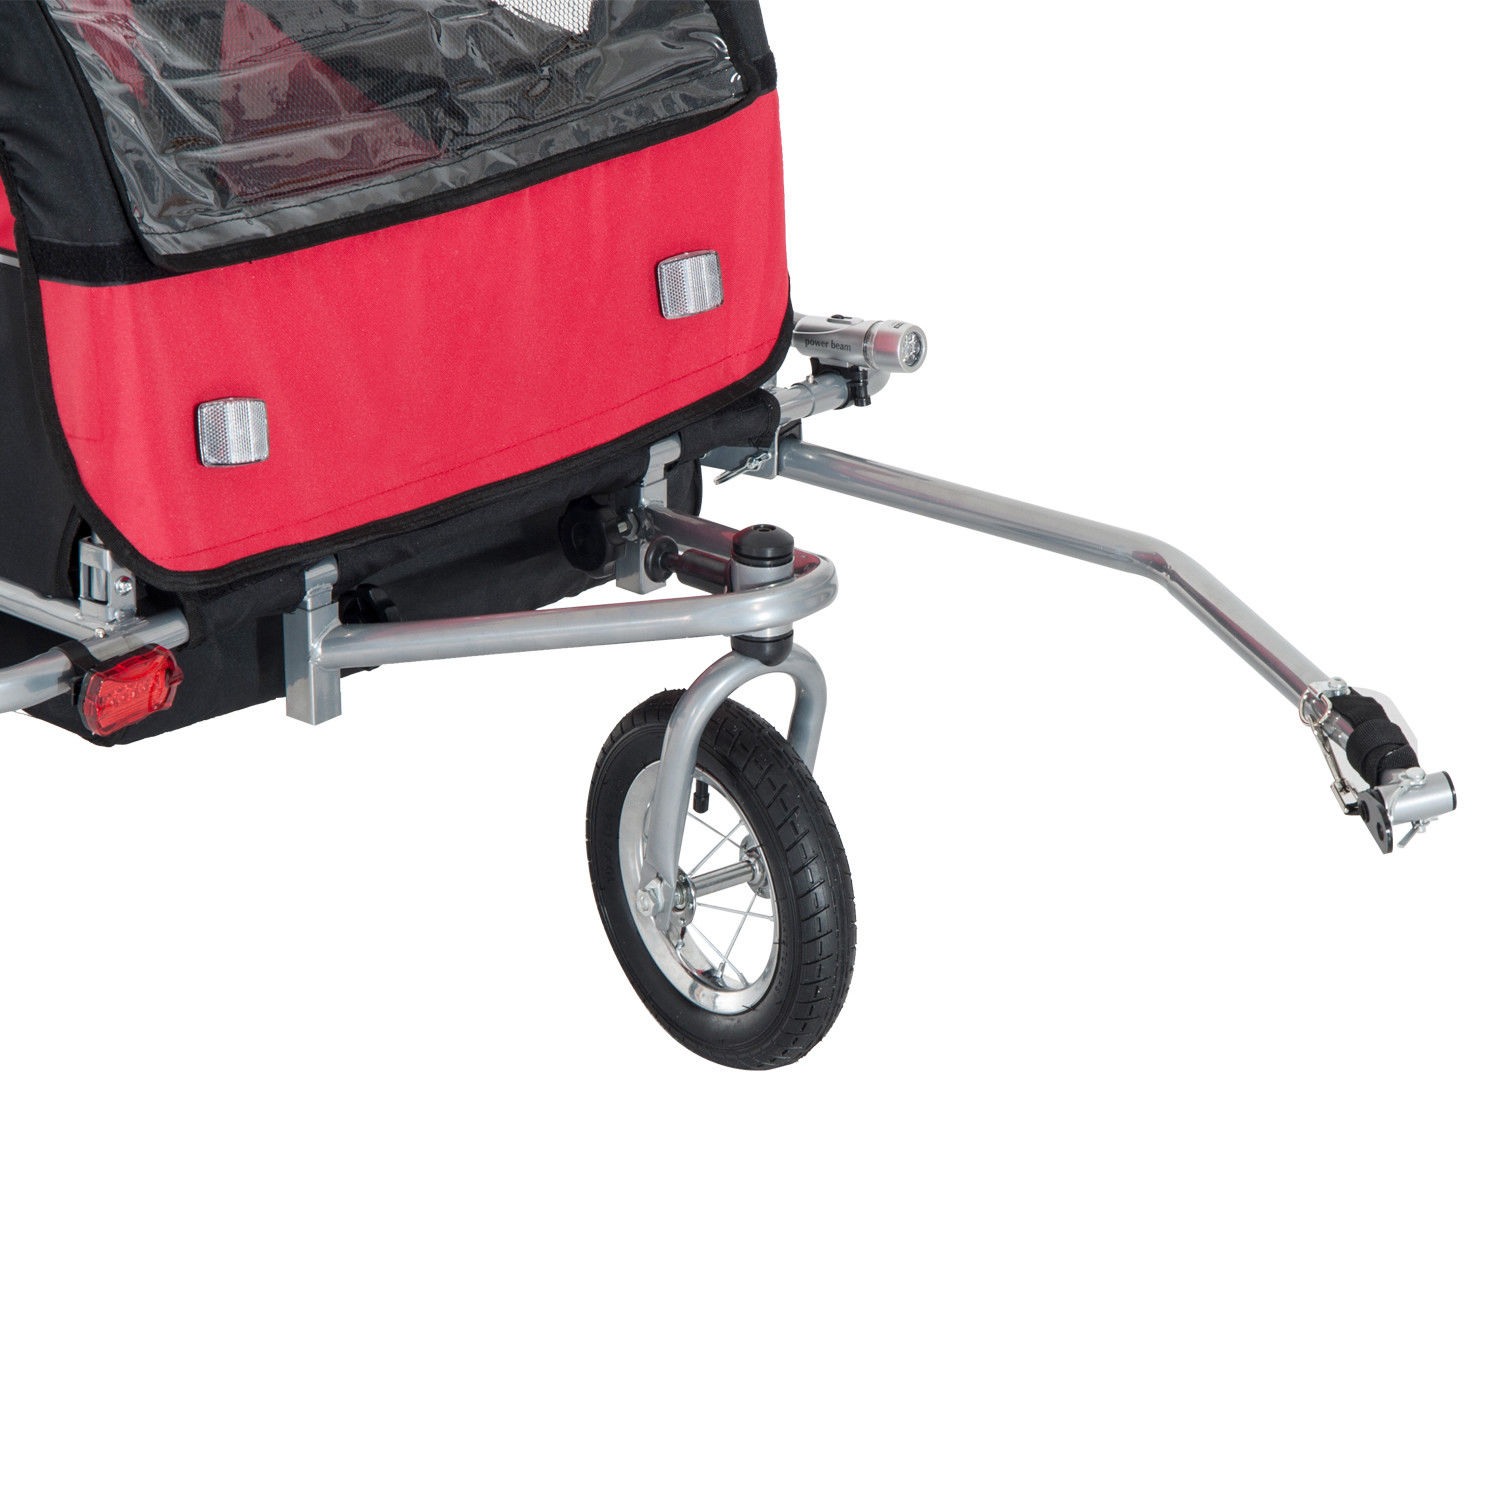 2-Seater-Child-Bike-Trailer-Kids-Carrier-Safety-Harness-Baby-Stroller-Jogger thumbnail 8